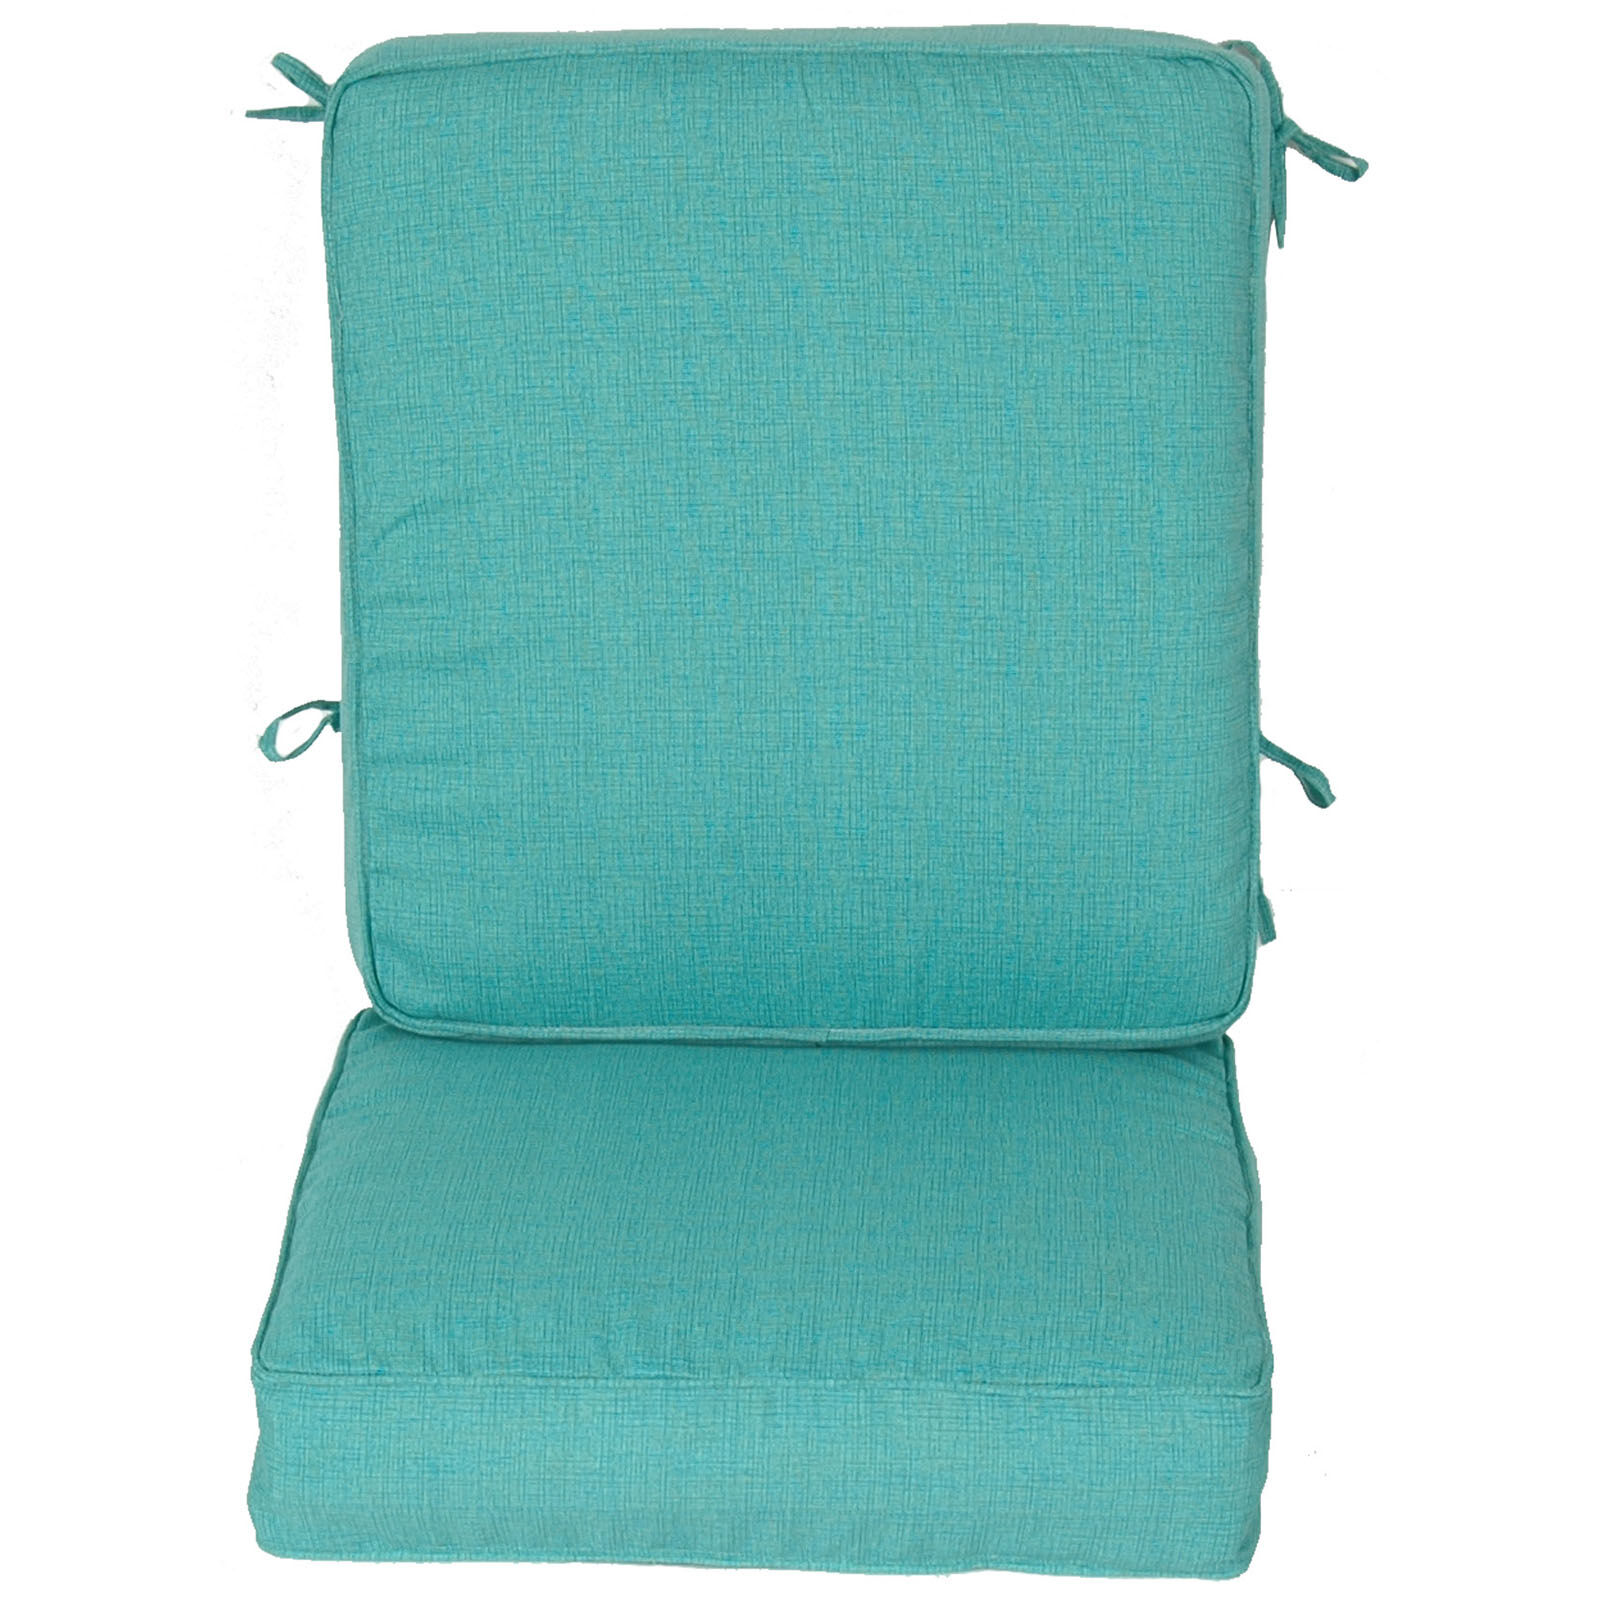 teal chair cushions cover for chaise lounge peacock 2 piece deep seat cushion at home